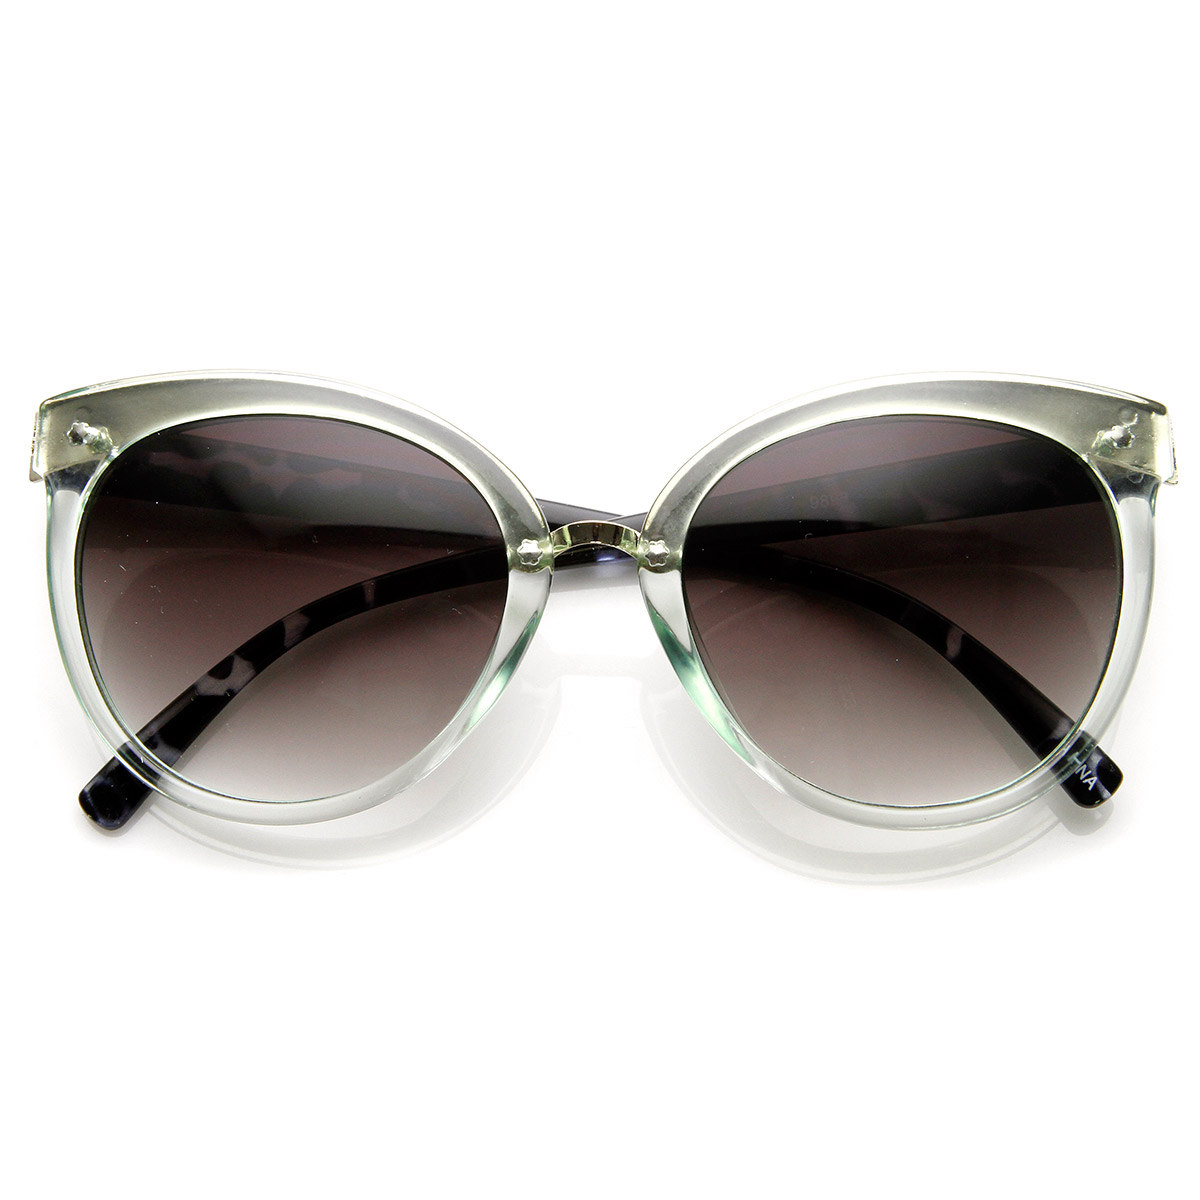 2b2df55763 Oversized Cat Eye Sunglasses Amazon